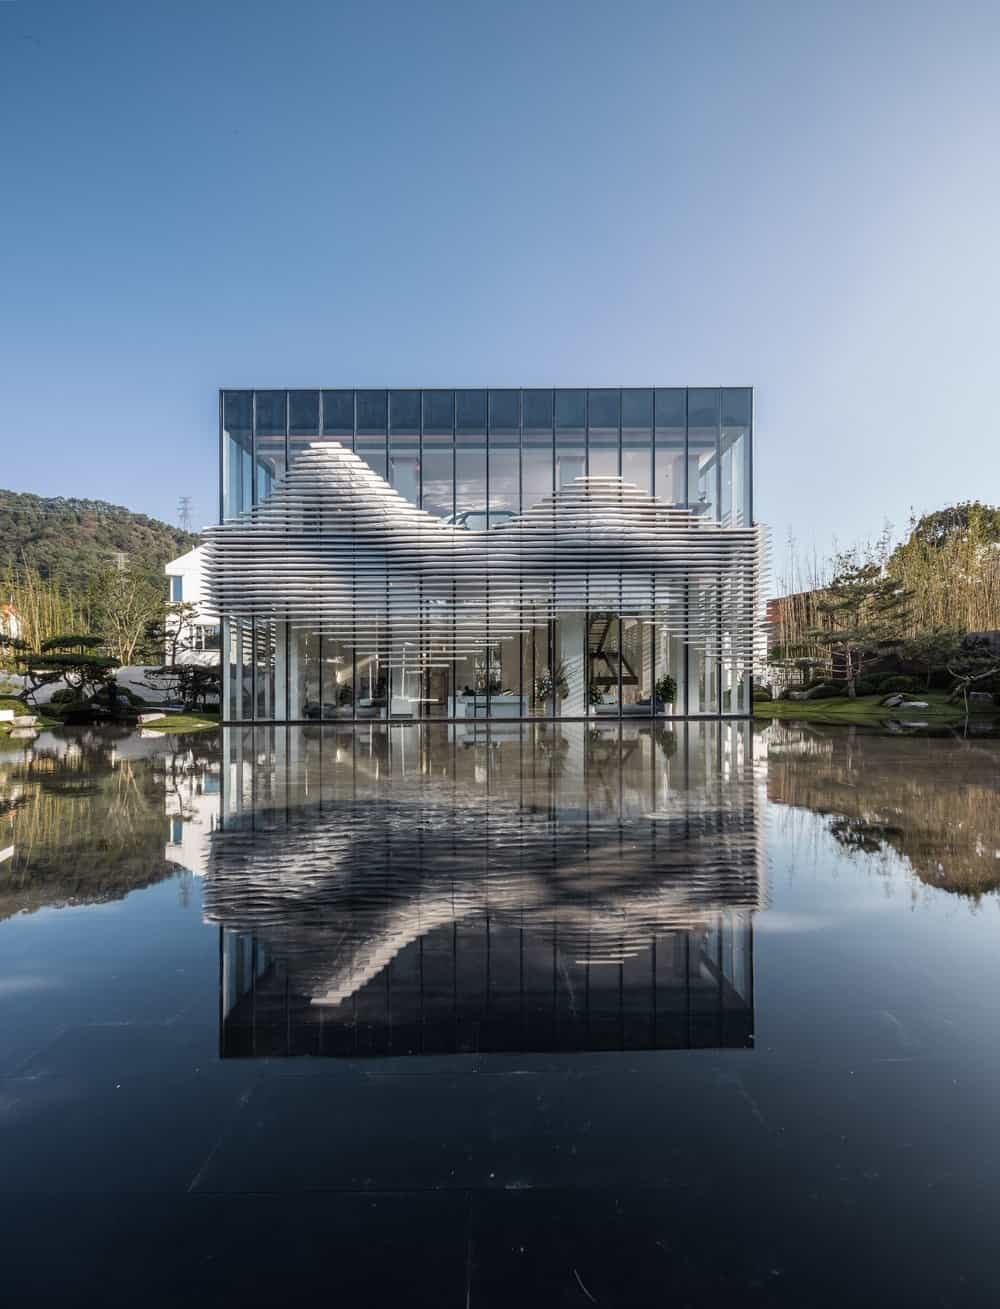 The large glass building and its unique design are augmented by the water landscape that reflects the structure.